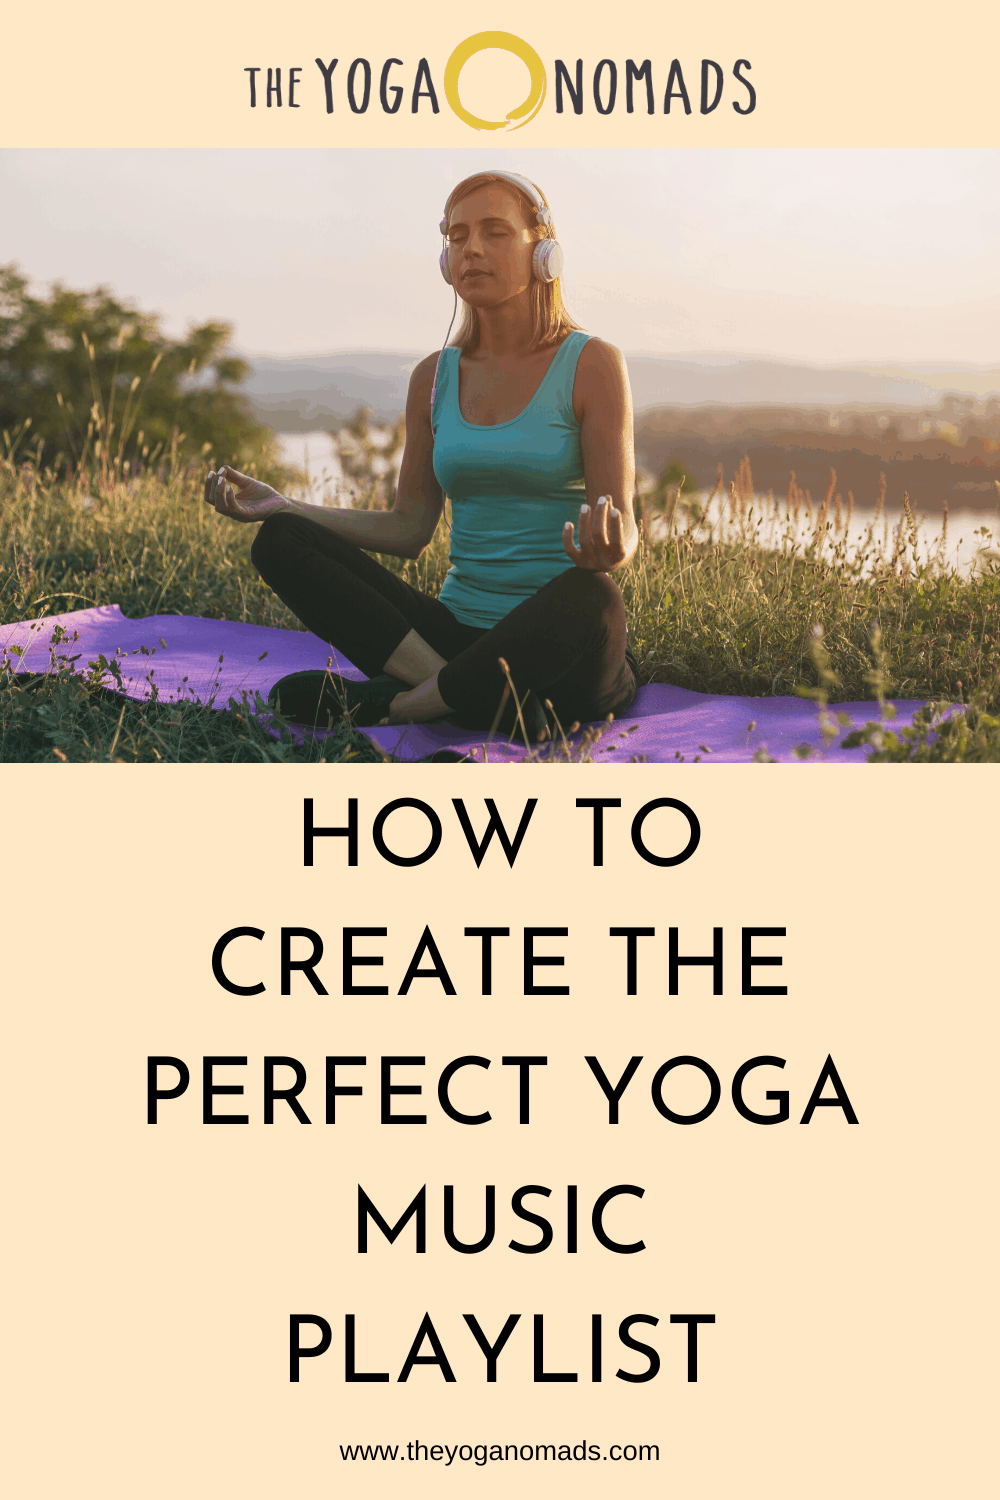 How to Create the Perfect Yoga Music Playlist